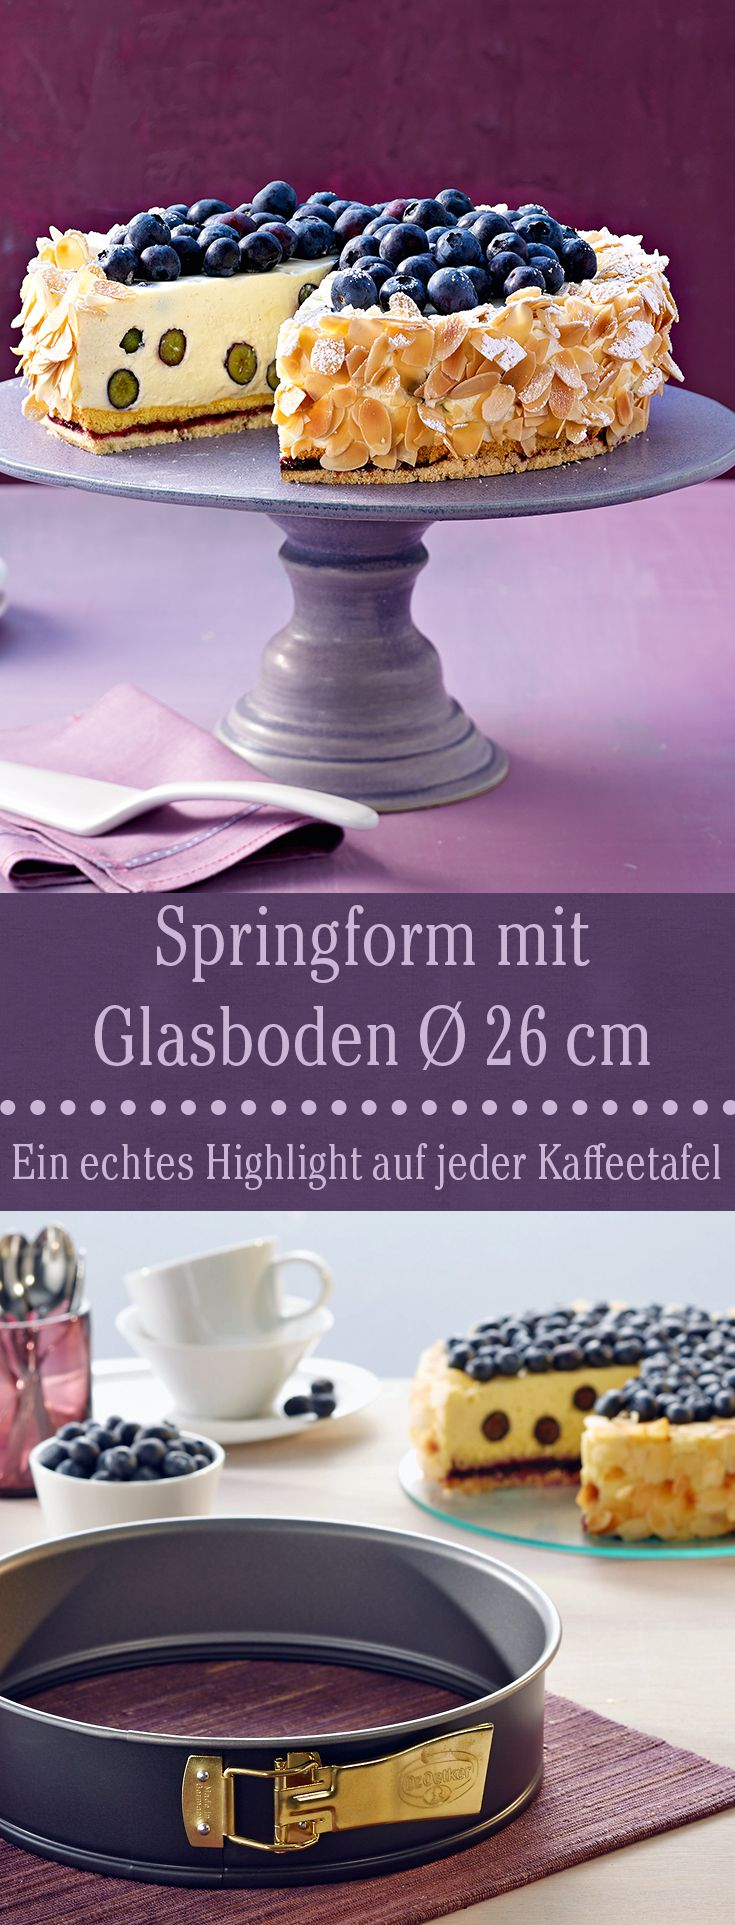 springform mit glasboden 26 cm geschenke f r backbegeisterte pinterest recipes. Black Bedroom Furniture Sets. Home Design Ideas